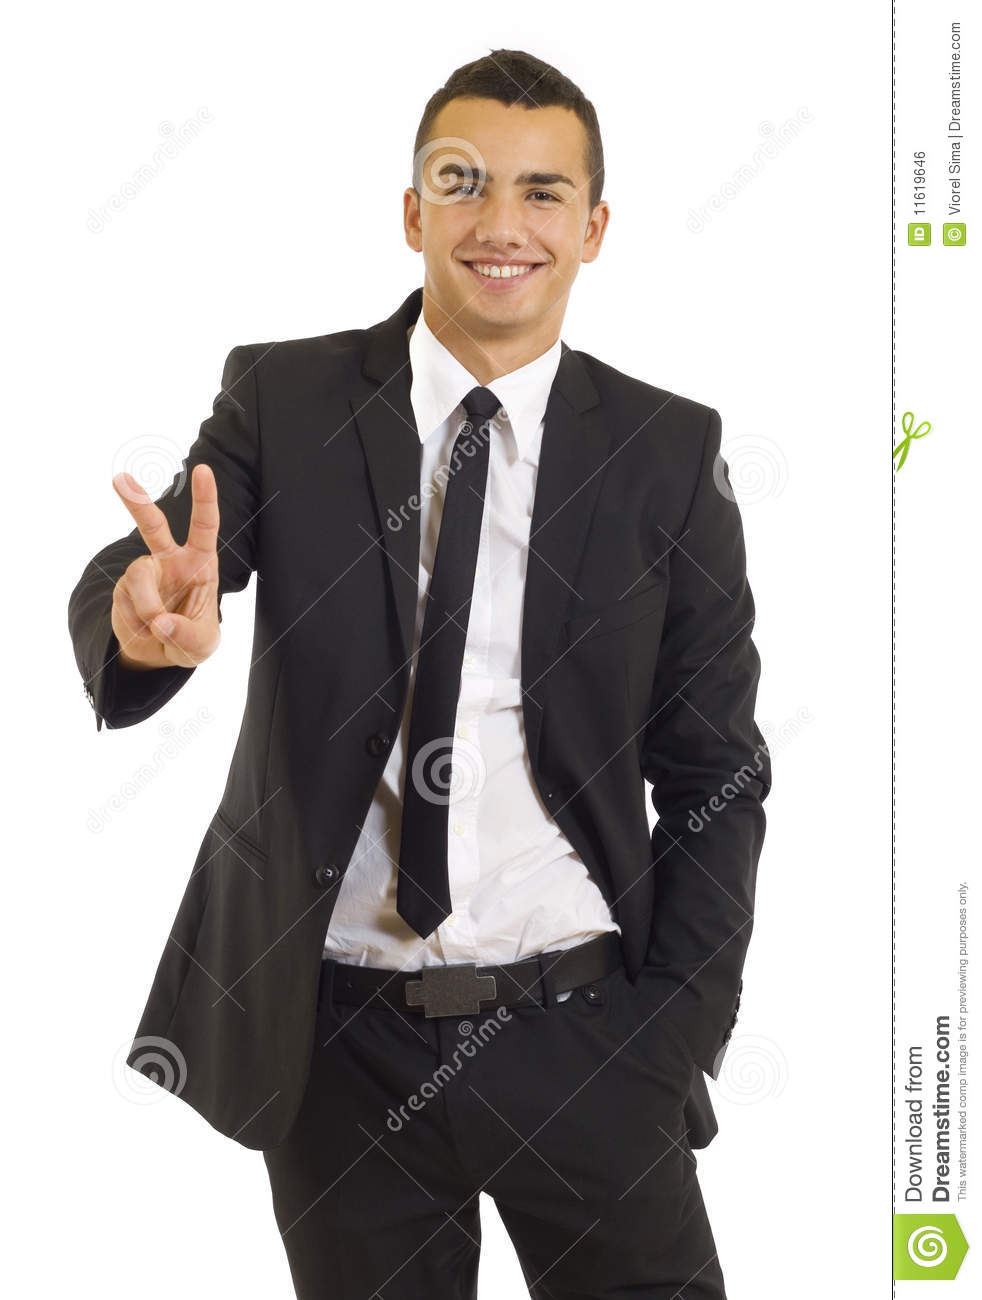 Businessman giving the victory sign